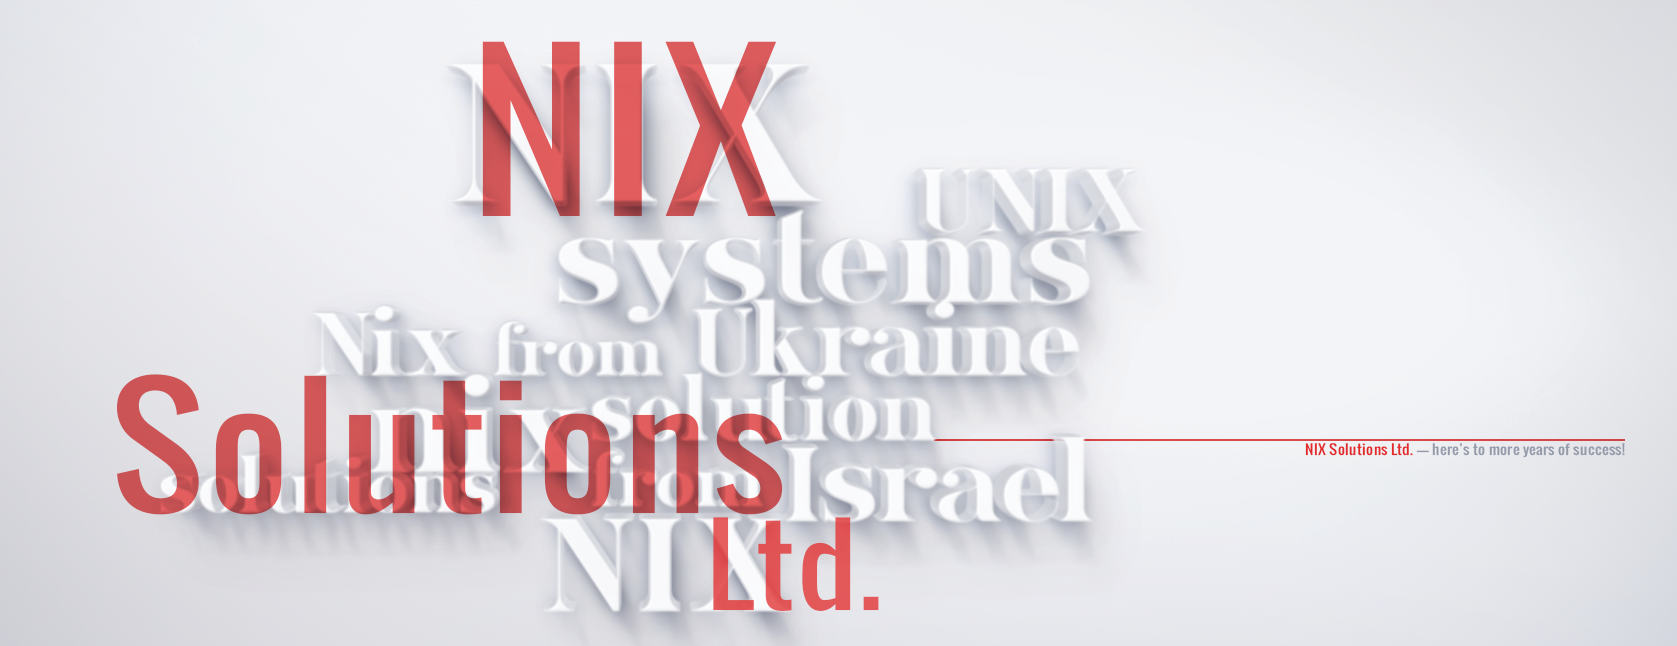 NIX Solutions Ukraine